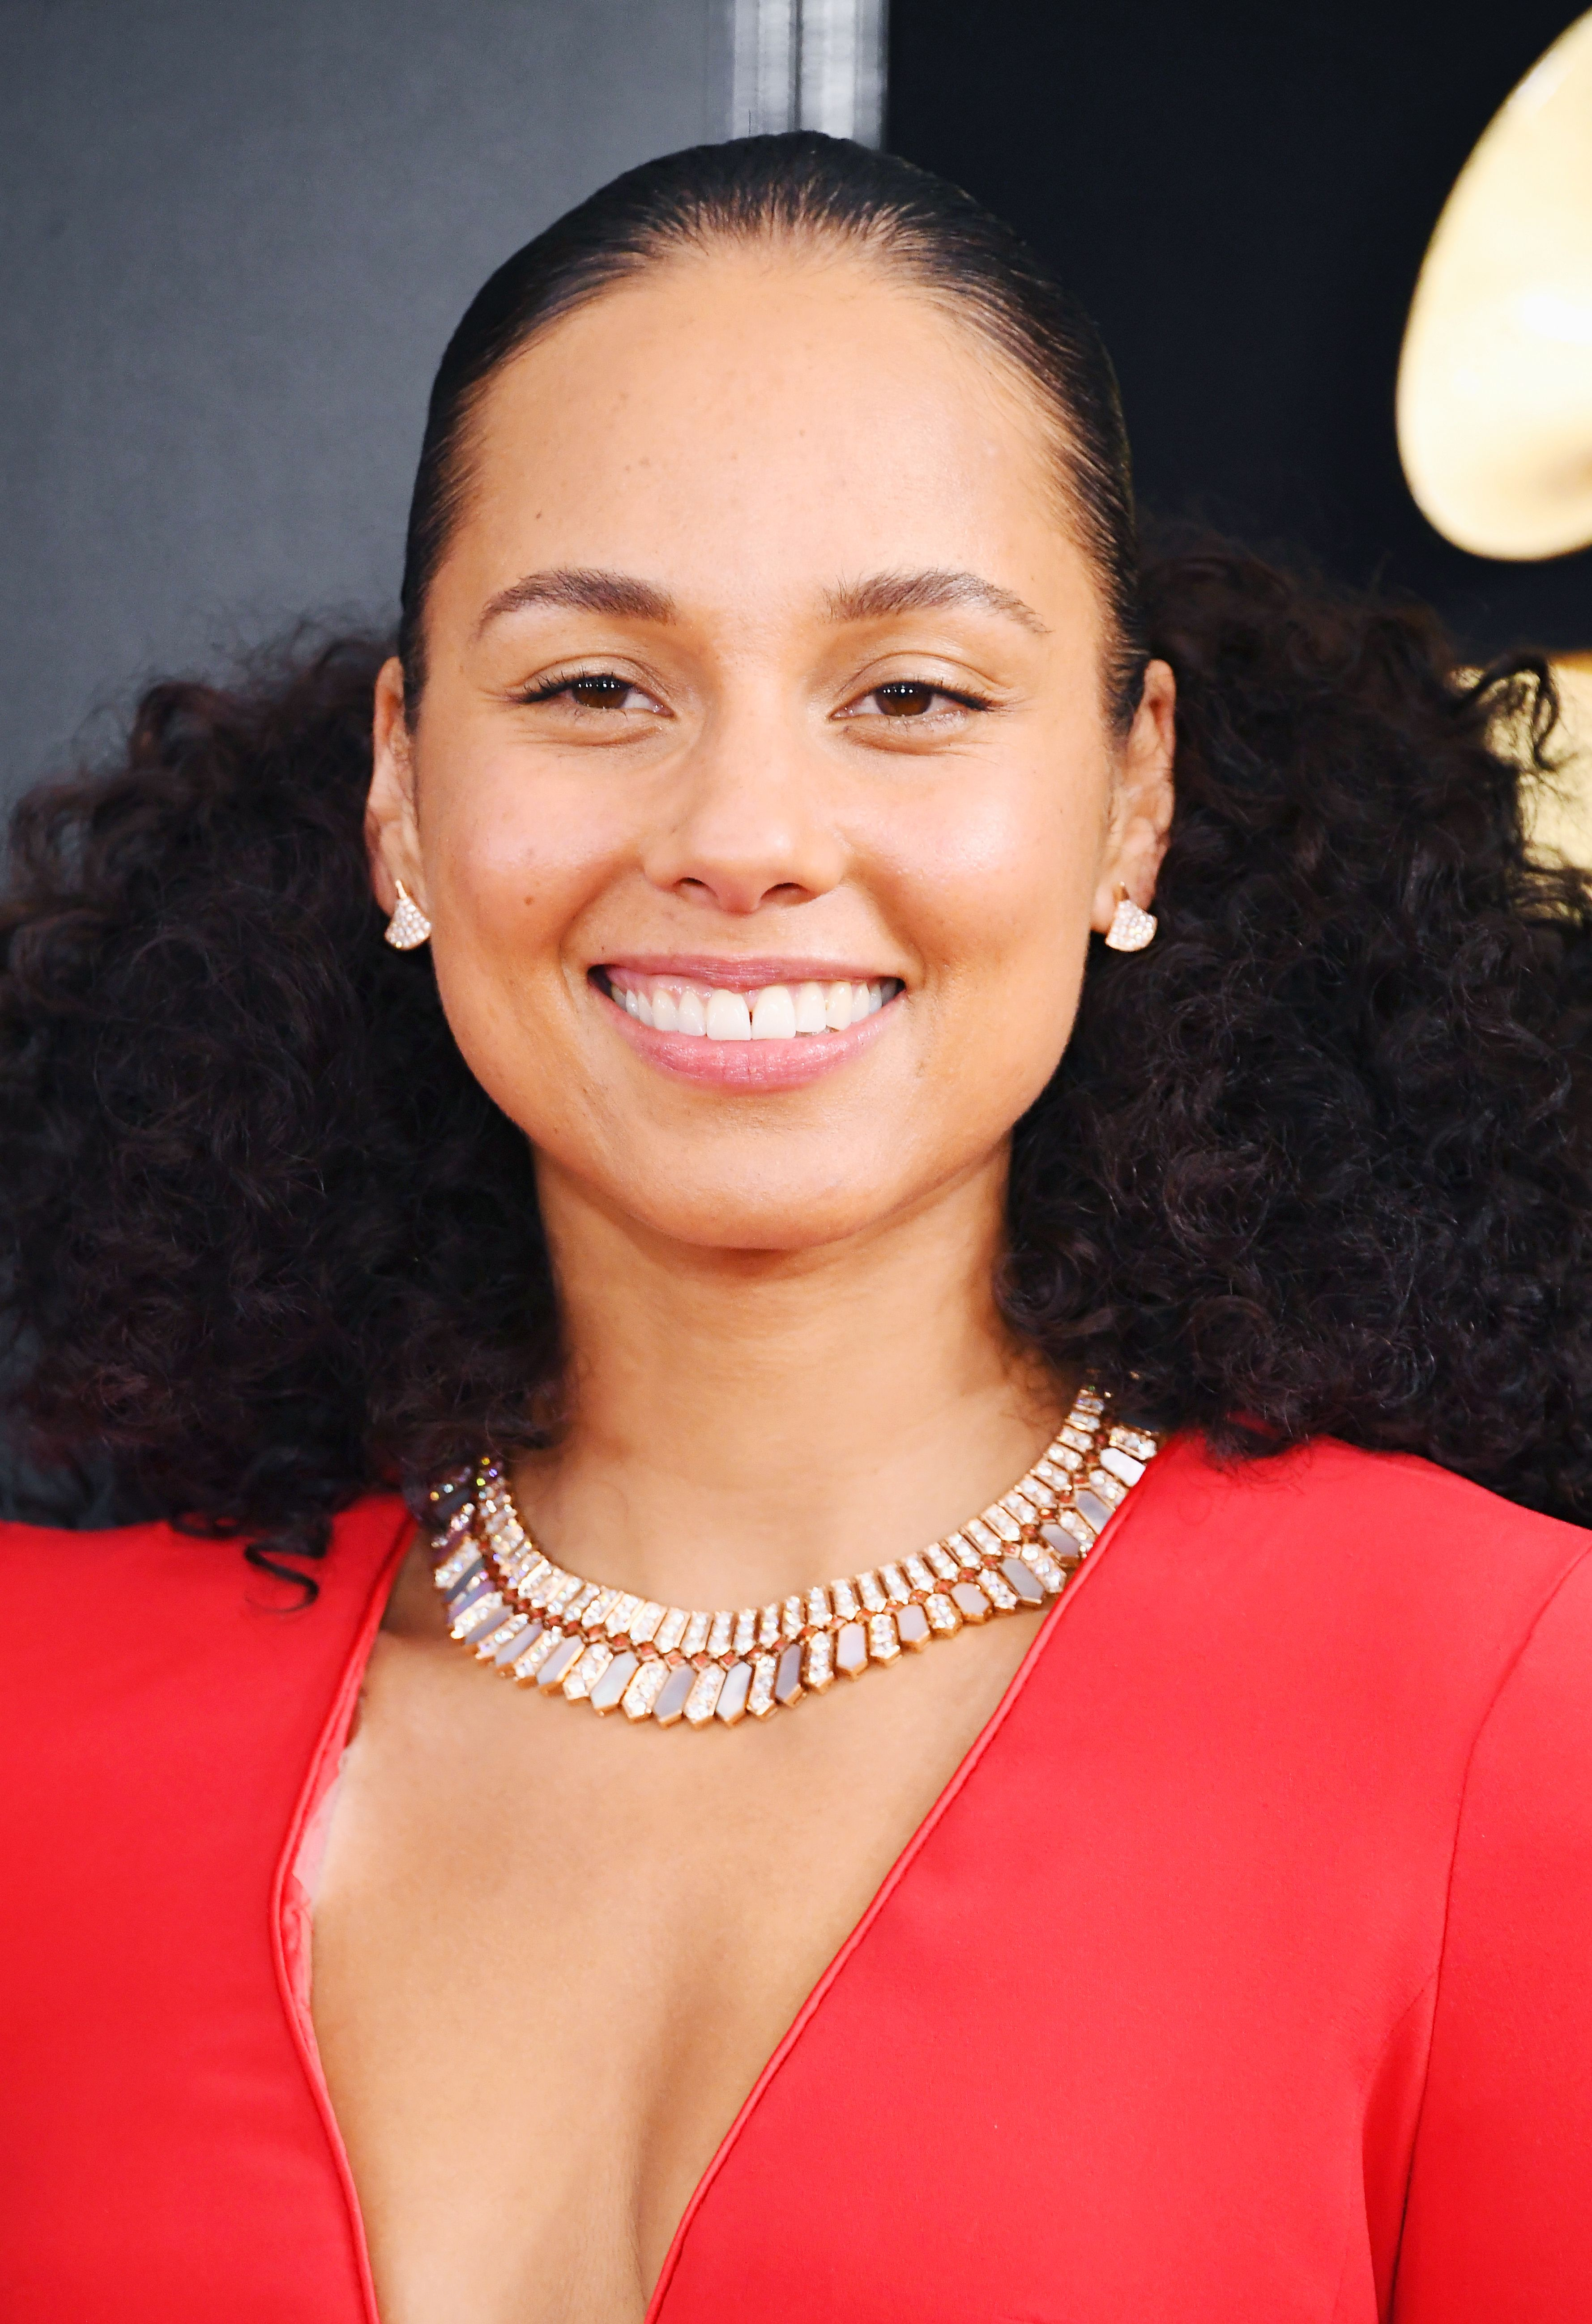 Confirmed Alicia Keys Wore This Beloved Natural Drugstore Brand To The Grammys Celebrity Beauty Alicia Keys Hairstyles Beautiful Freckles